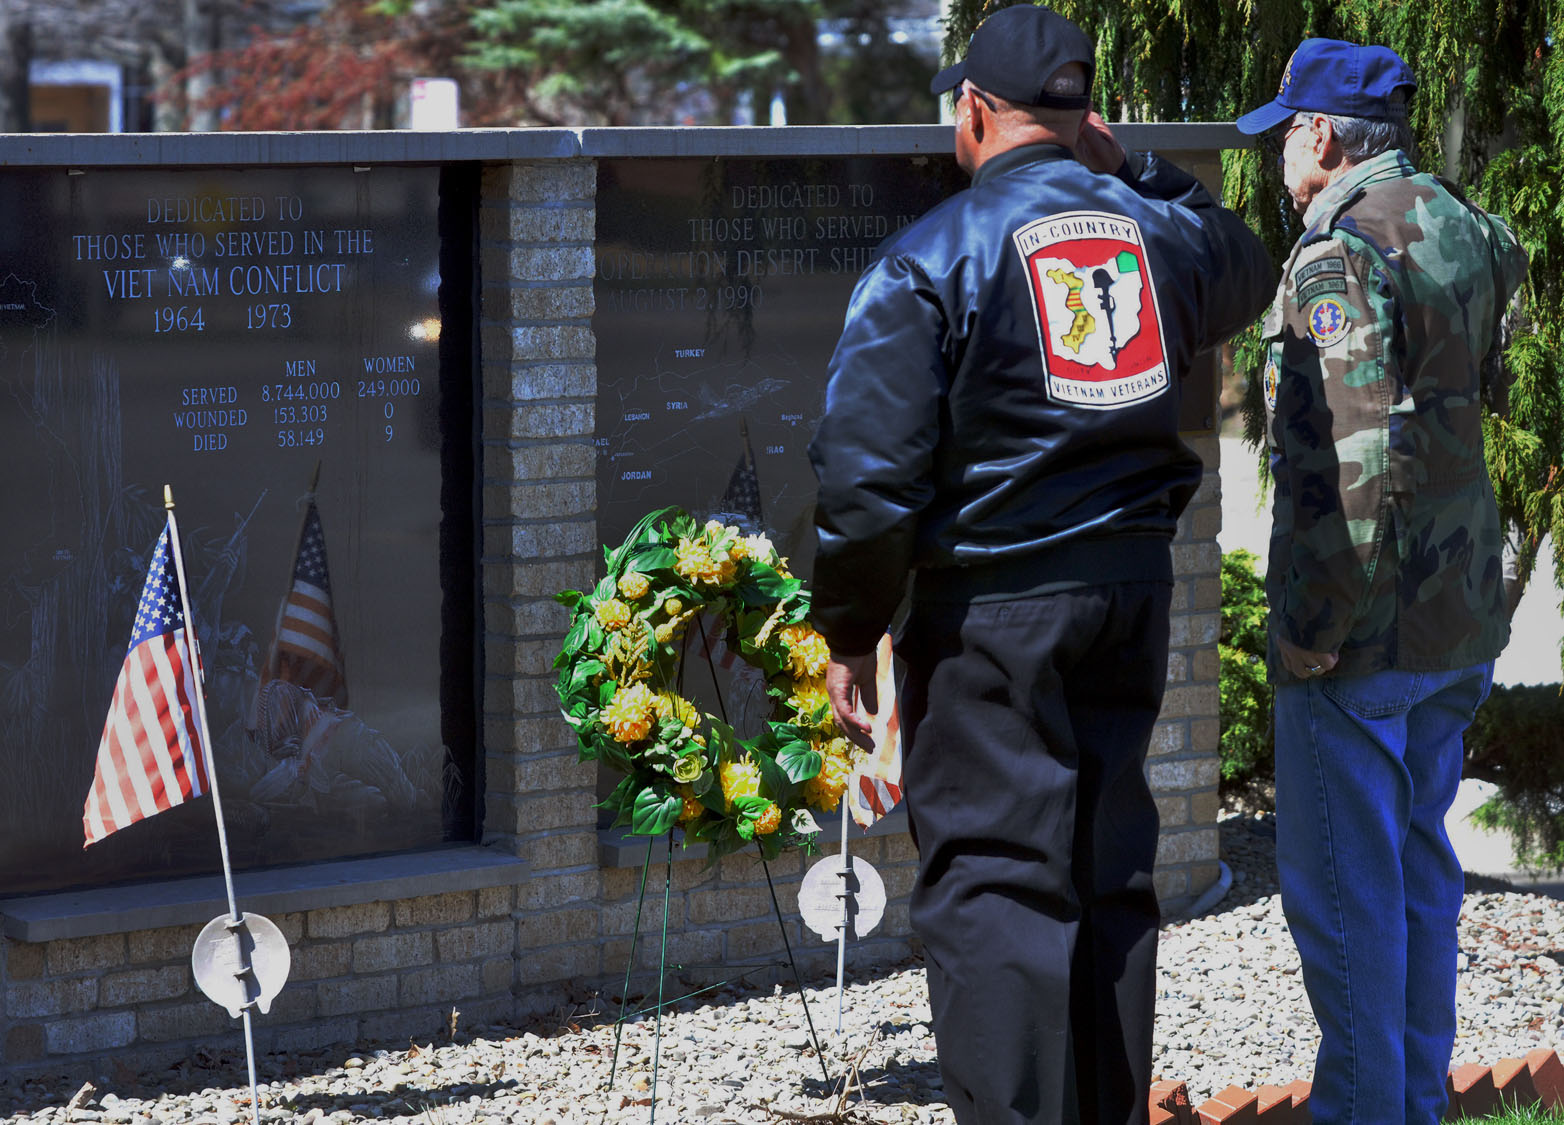 Commemorating the 50th anniversary of the Vietnam War